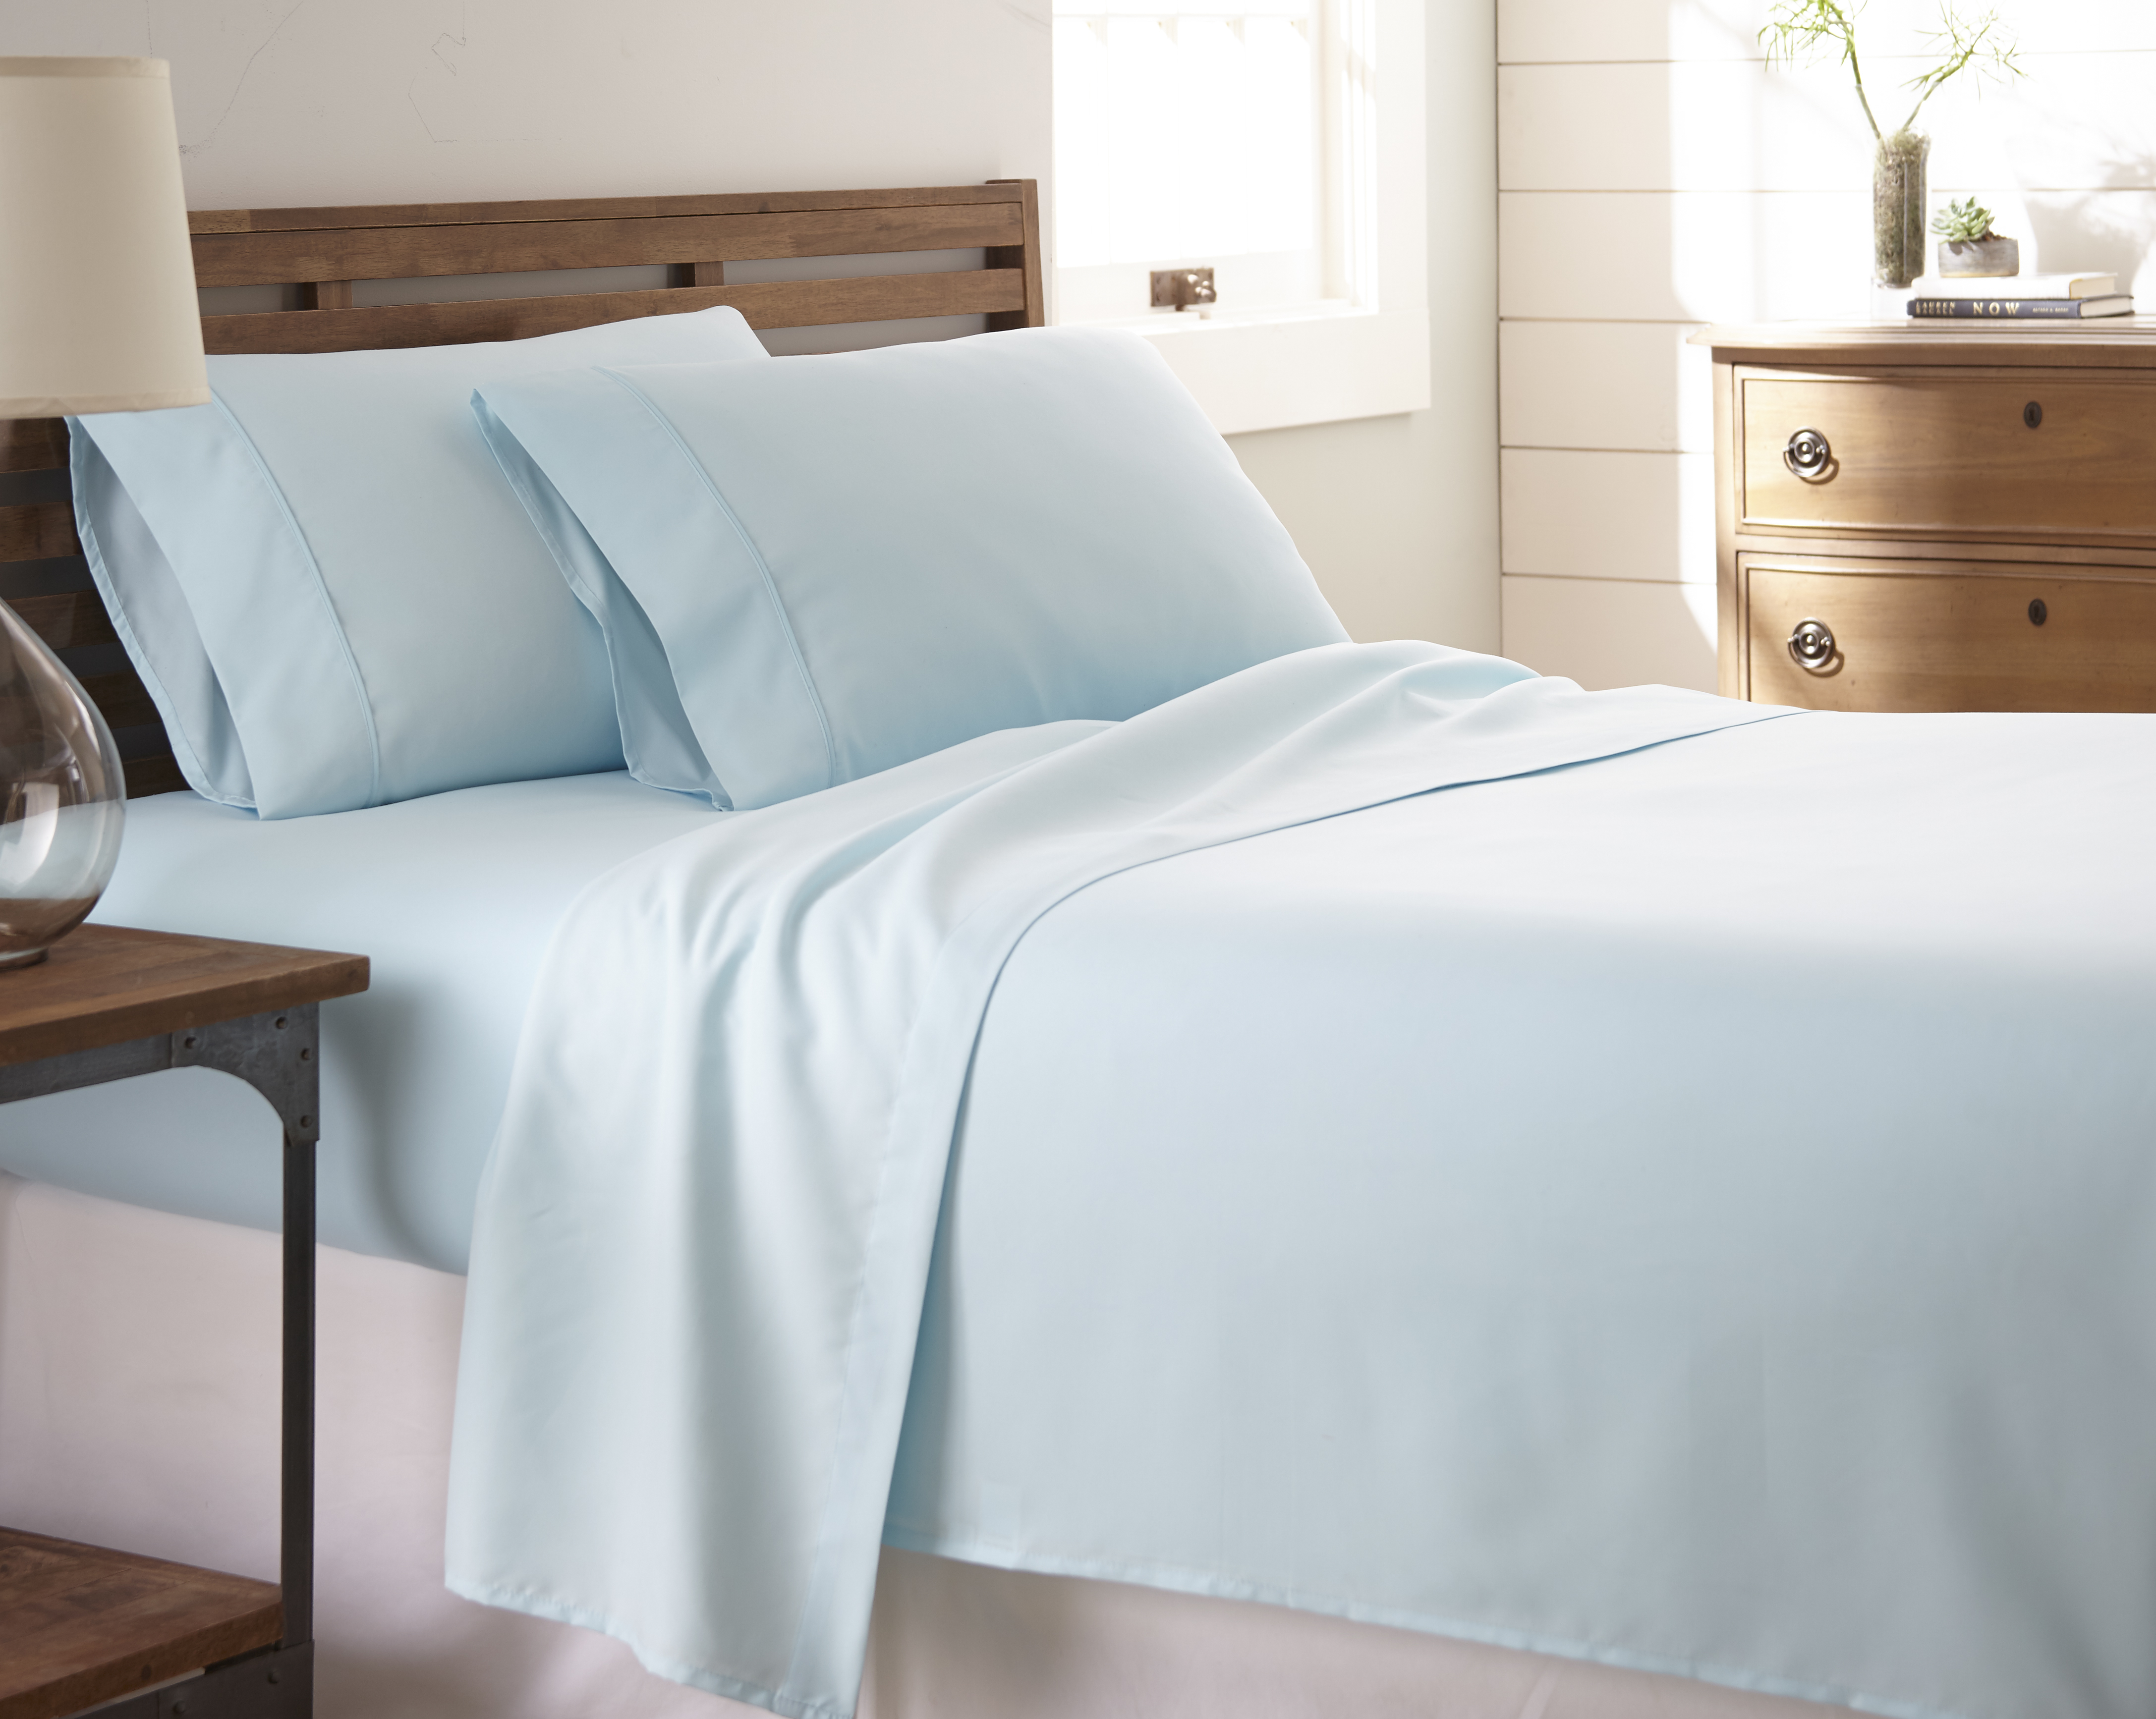 Bamboo Softness Premium 4 Piece Bed Sheet Set In 14 Colors - Aqua, Calking